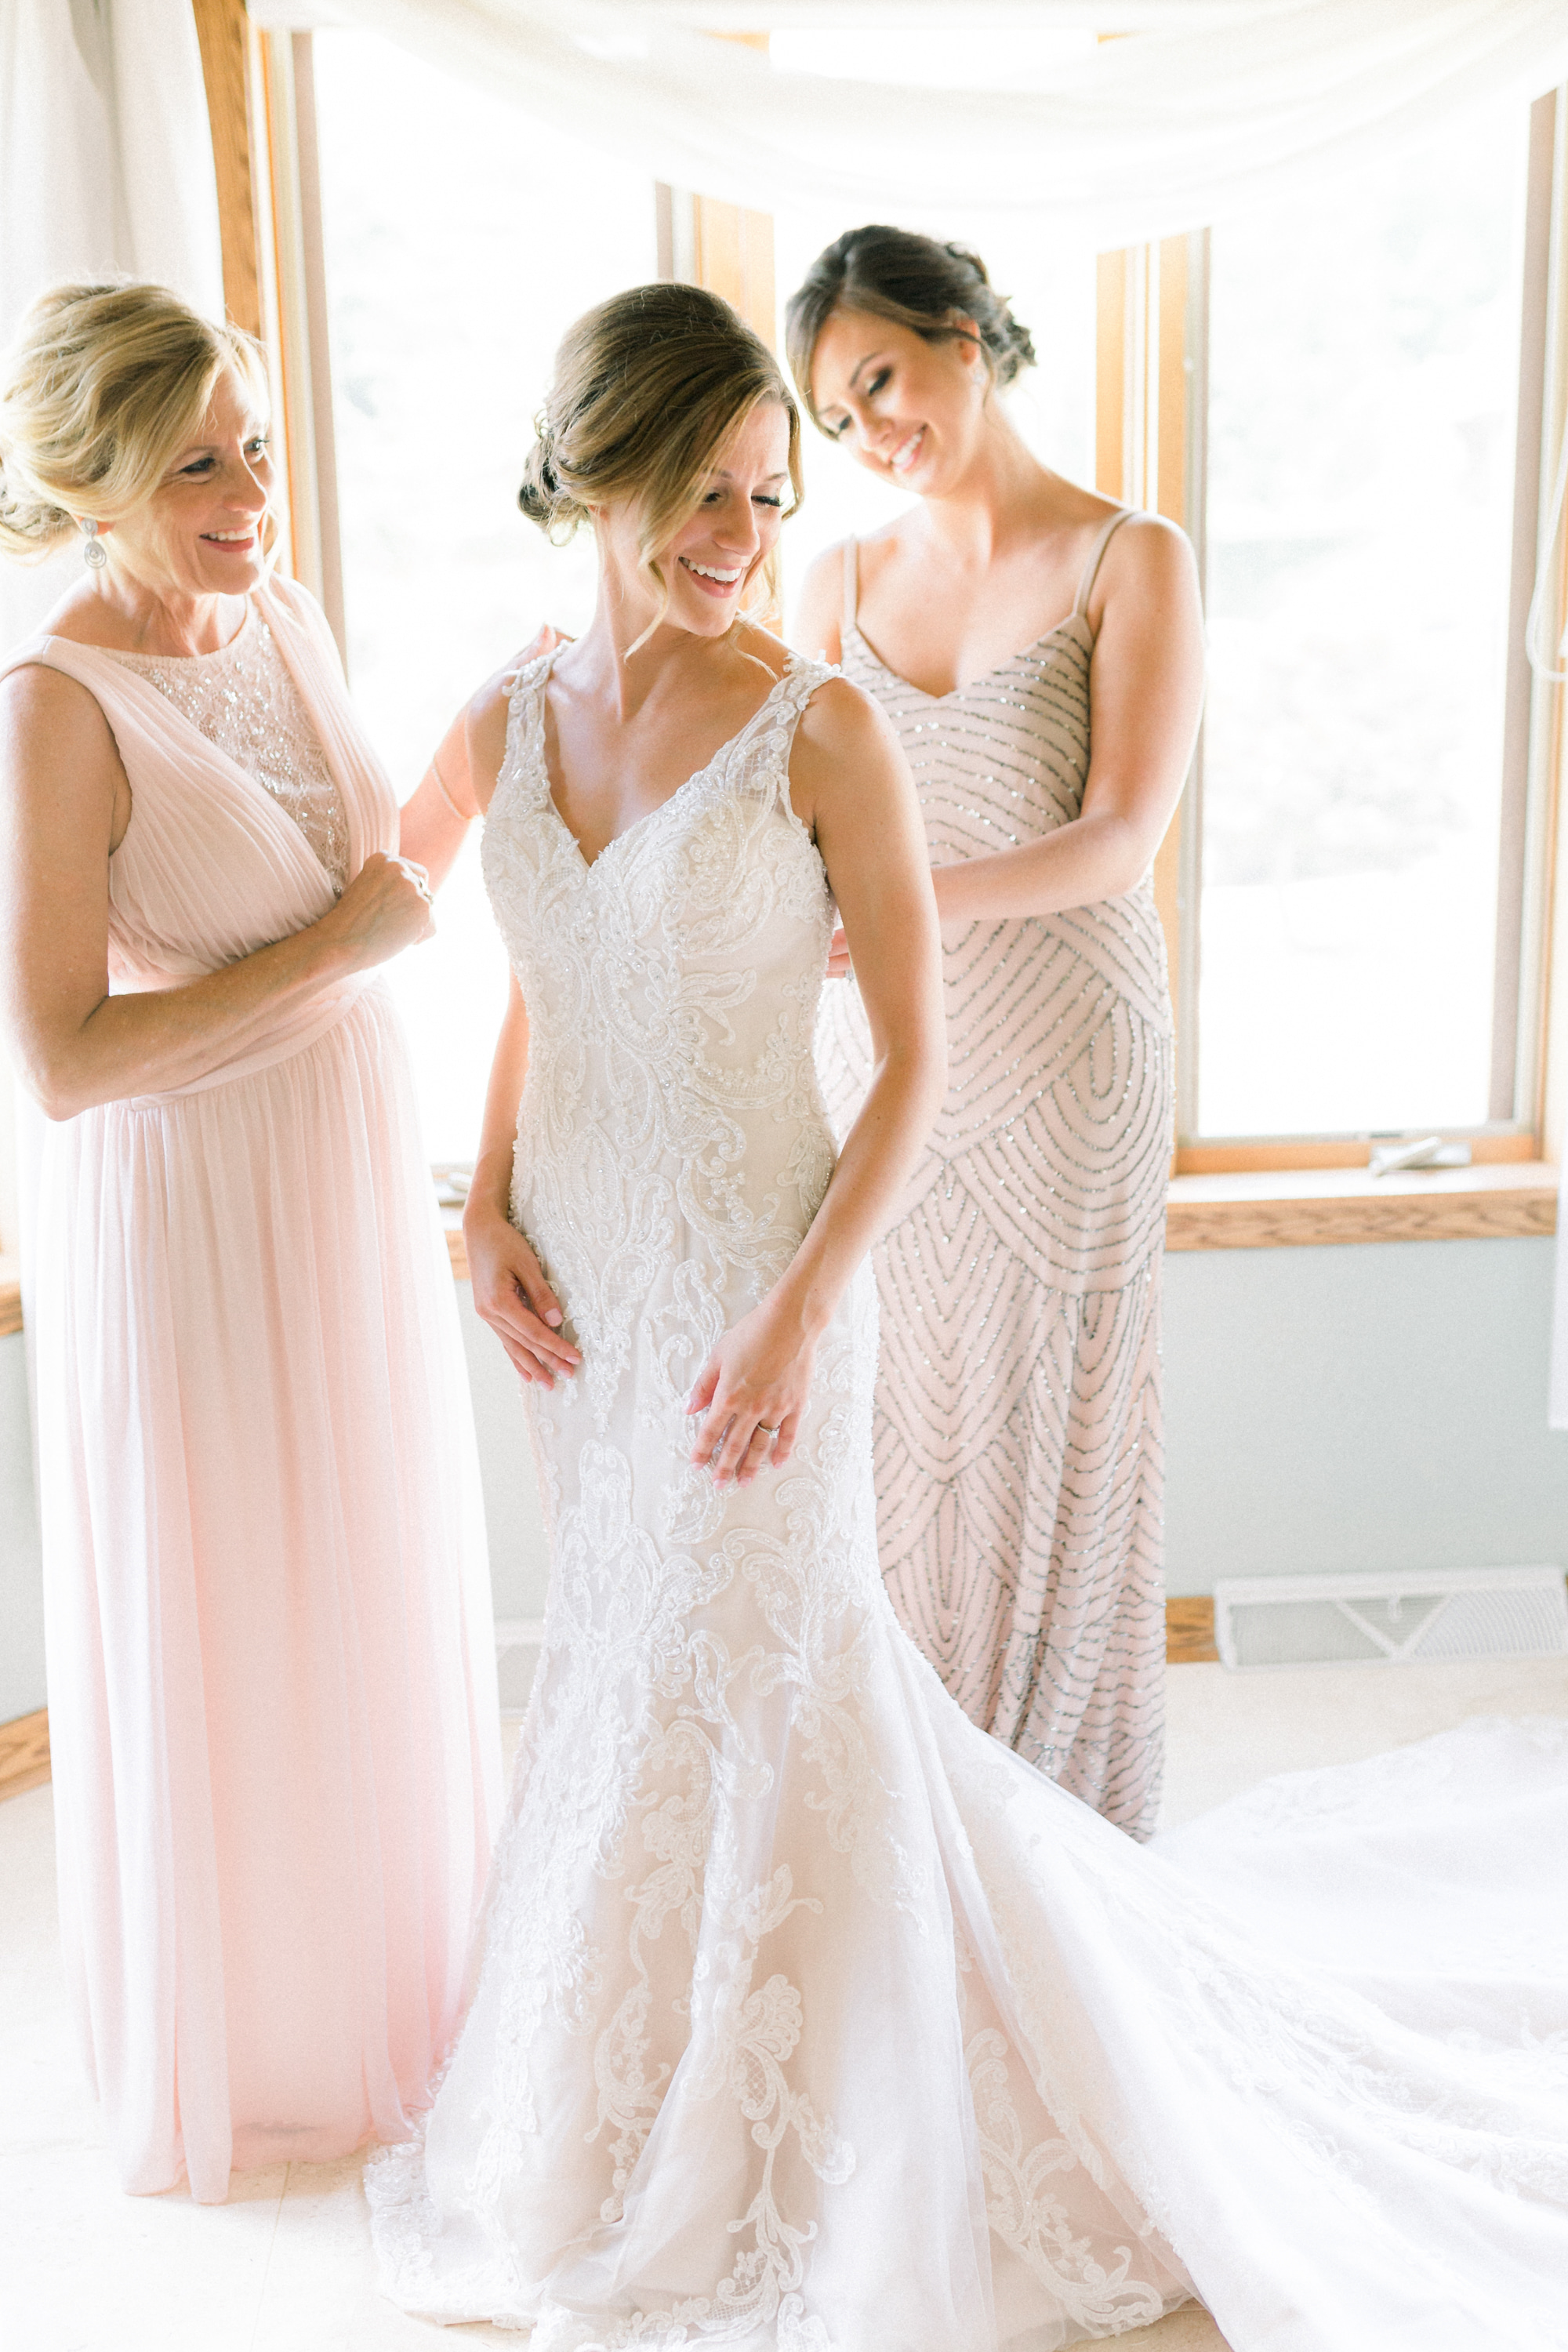 Bride getting into wedding dress for Pittsburgh wedding planned by Exhale Events. Find more wedding inspiration at exhale-events.com!